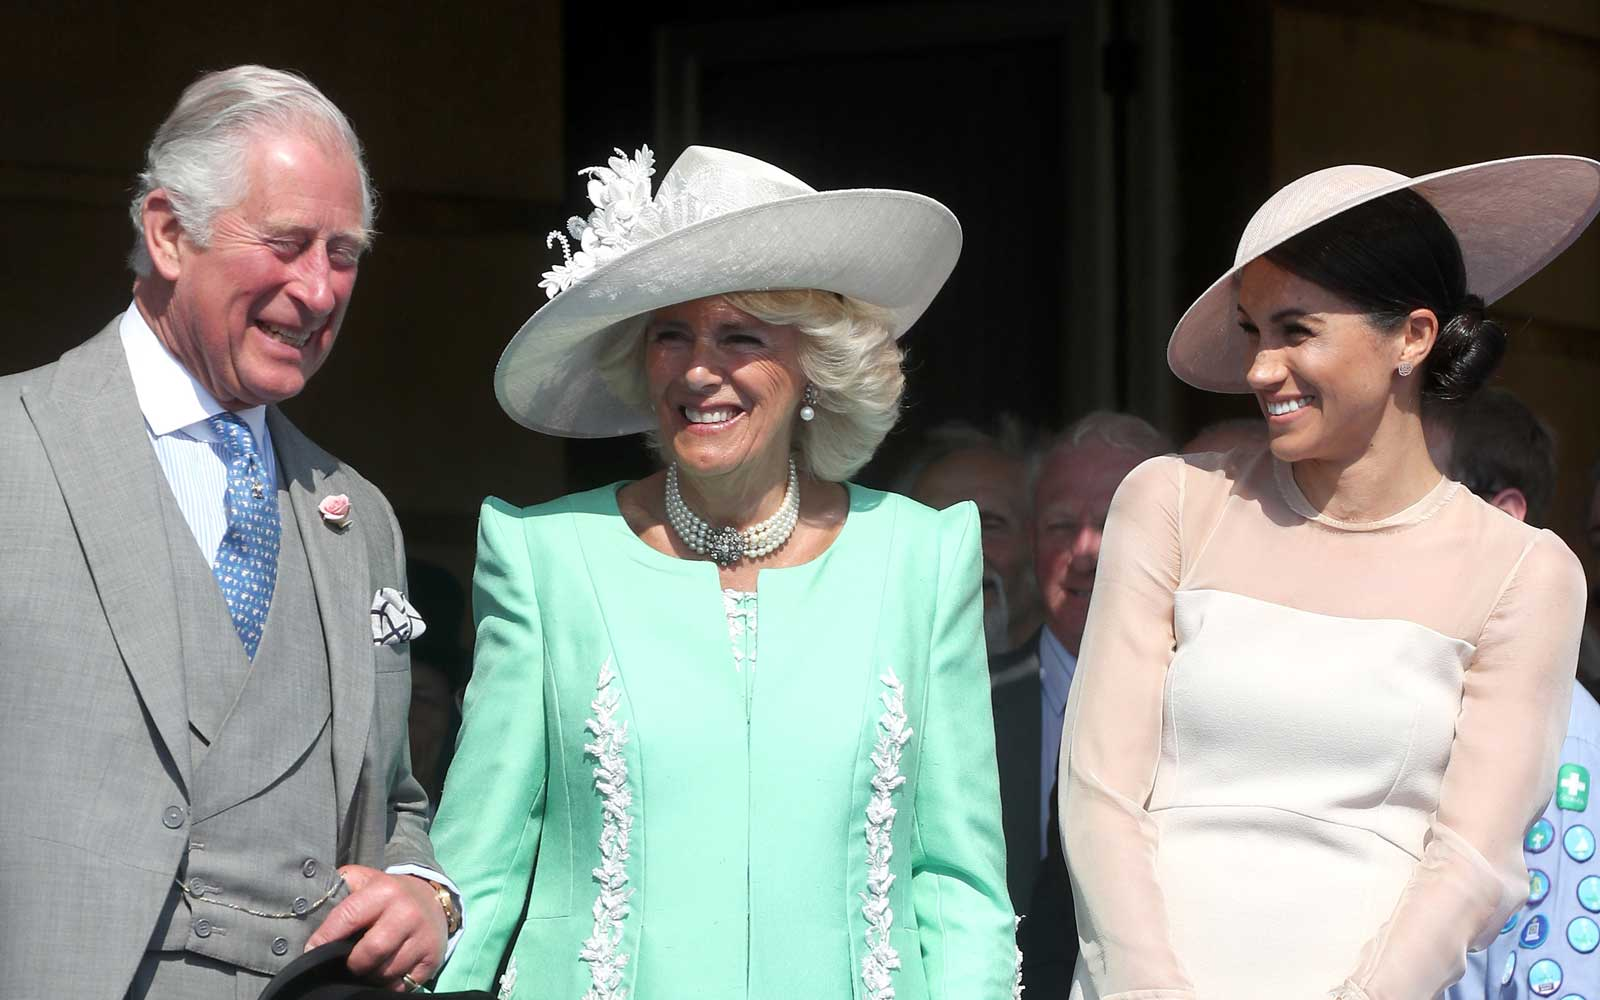 Prince Charles, Prince of Wales, Camilla, Duchess of Cornwall and Meghan, Duchess of Sussex